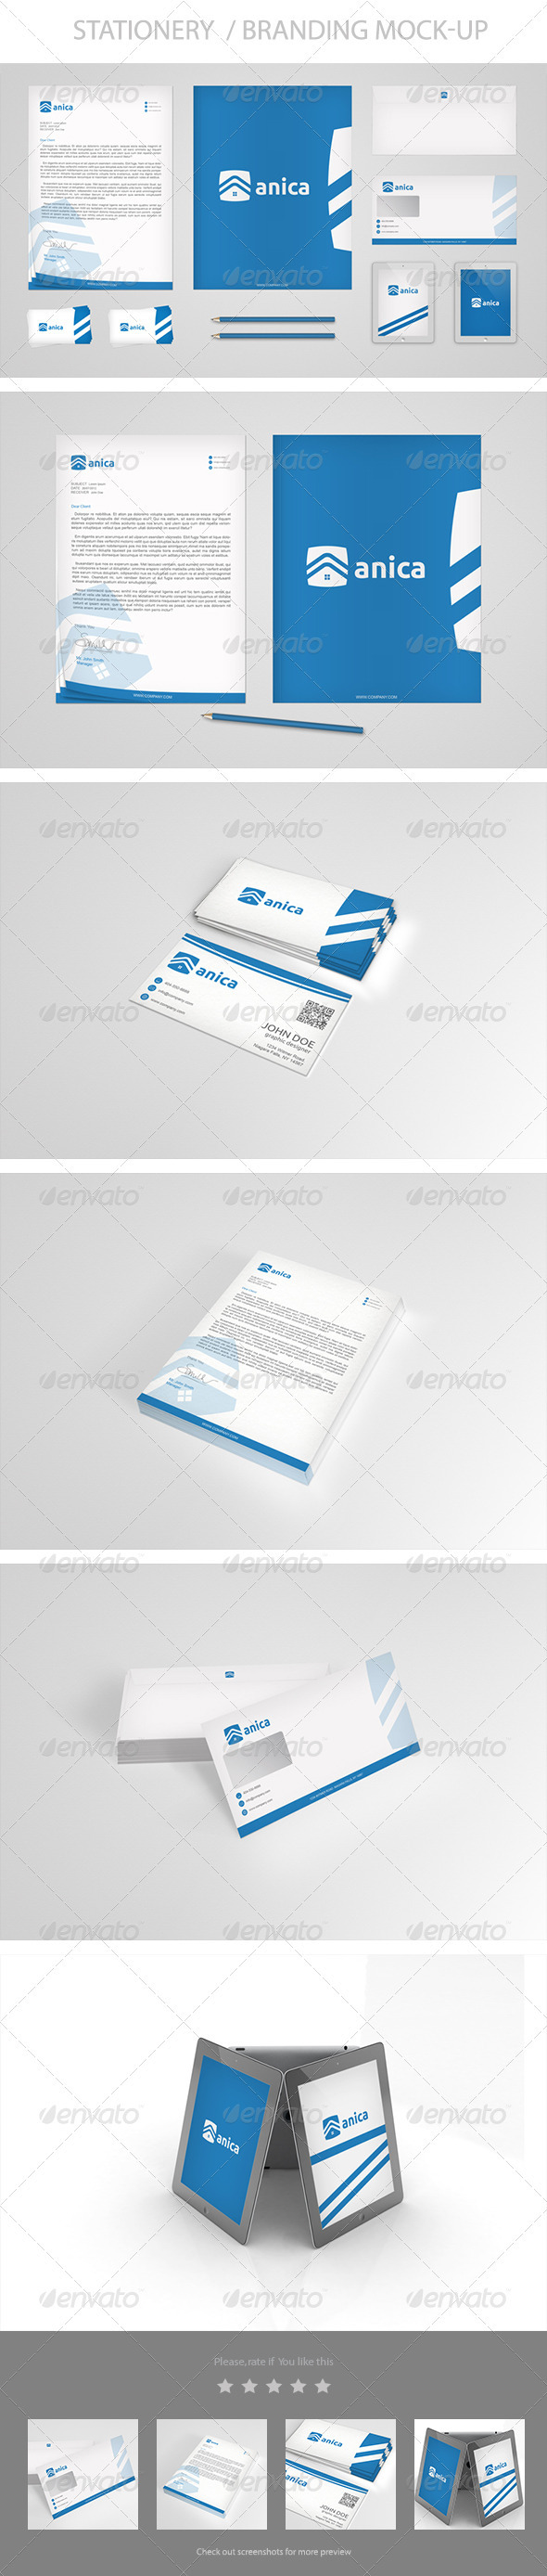 GraphicRiver Stationery Branding Mock-Up Vol 1.0 3580727